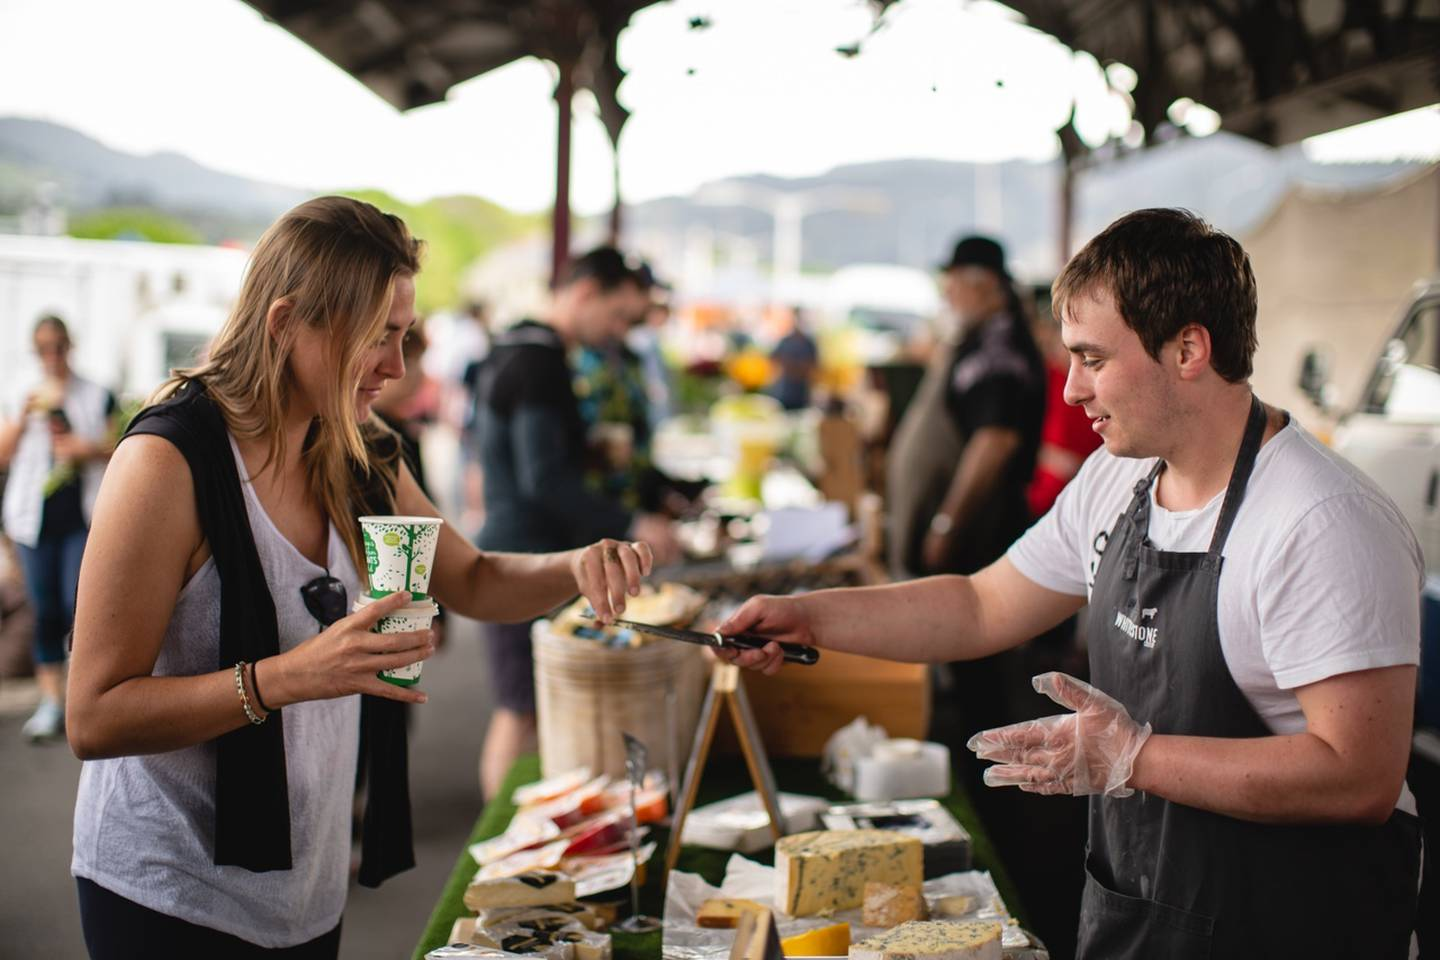 Roll with it: Cheese comes in a variety of guieses at the Dunedin Otago Farmers' Market. Photo / Supplied, Dunedin NZ